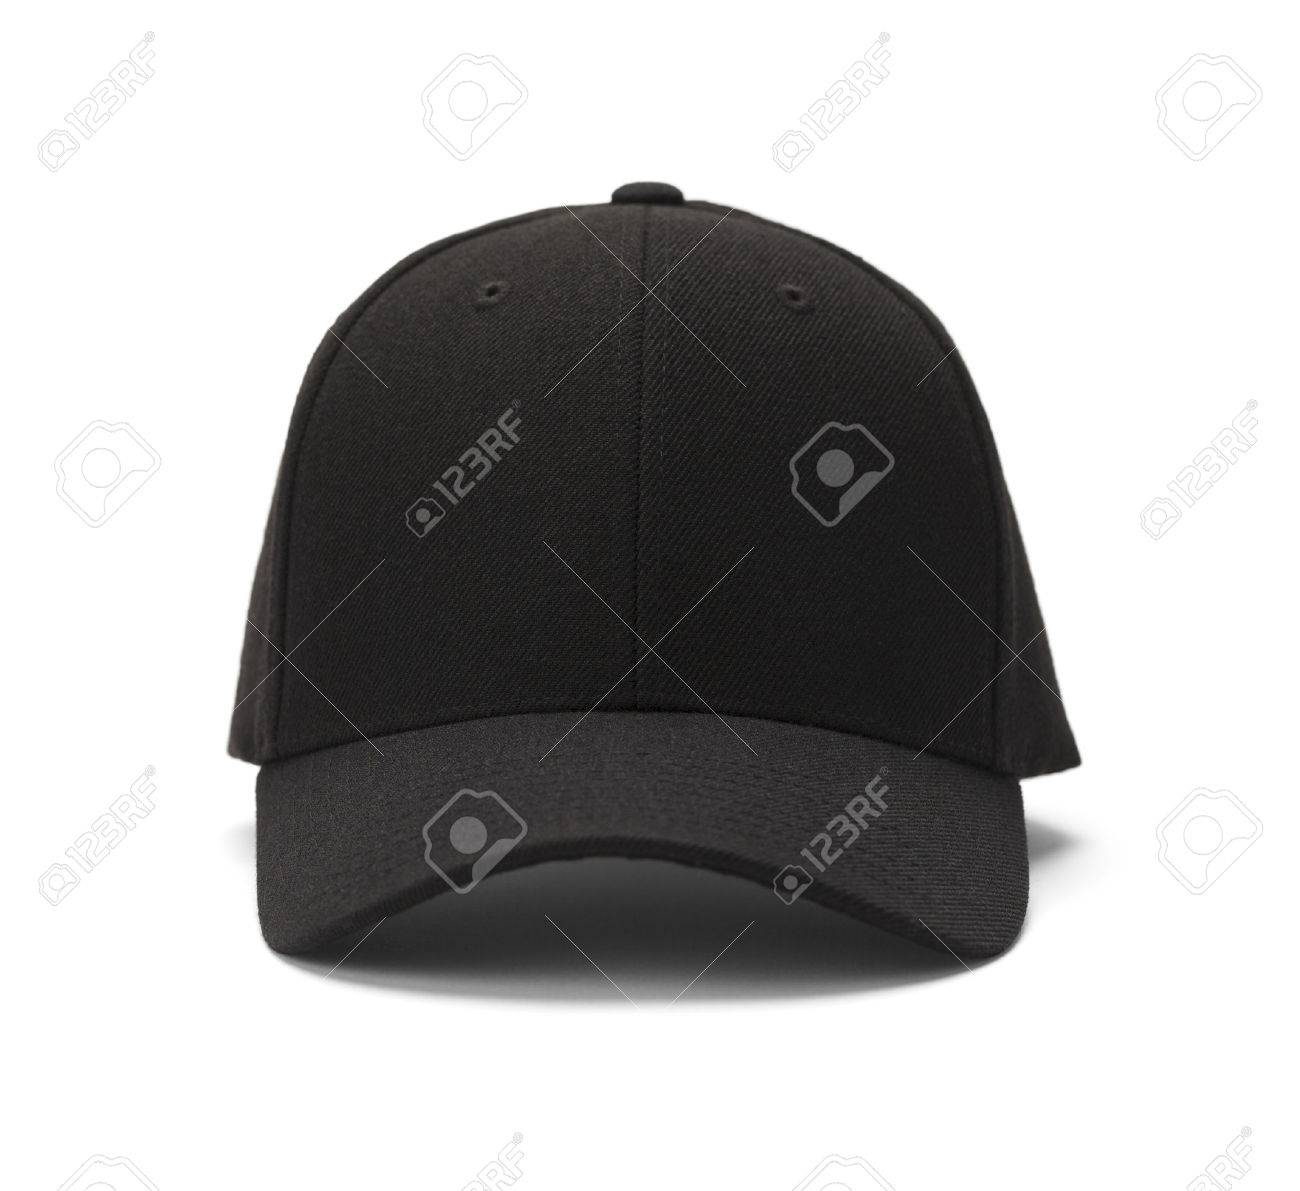 Front View of Black Cap Isolated on White Background. - 38377791